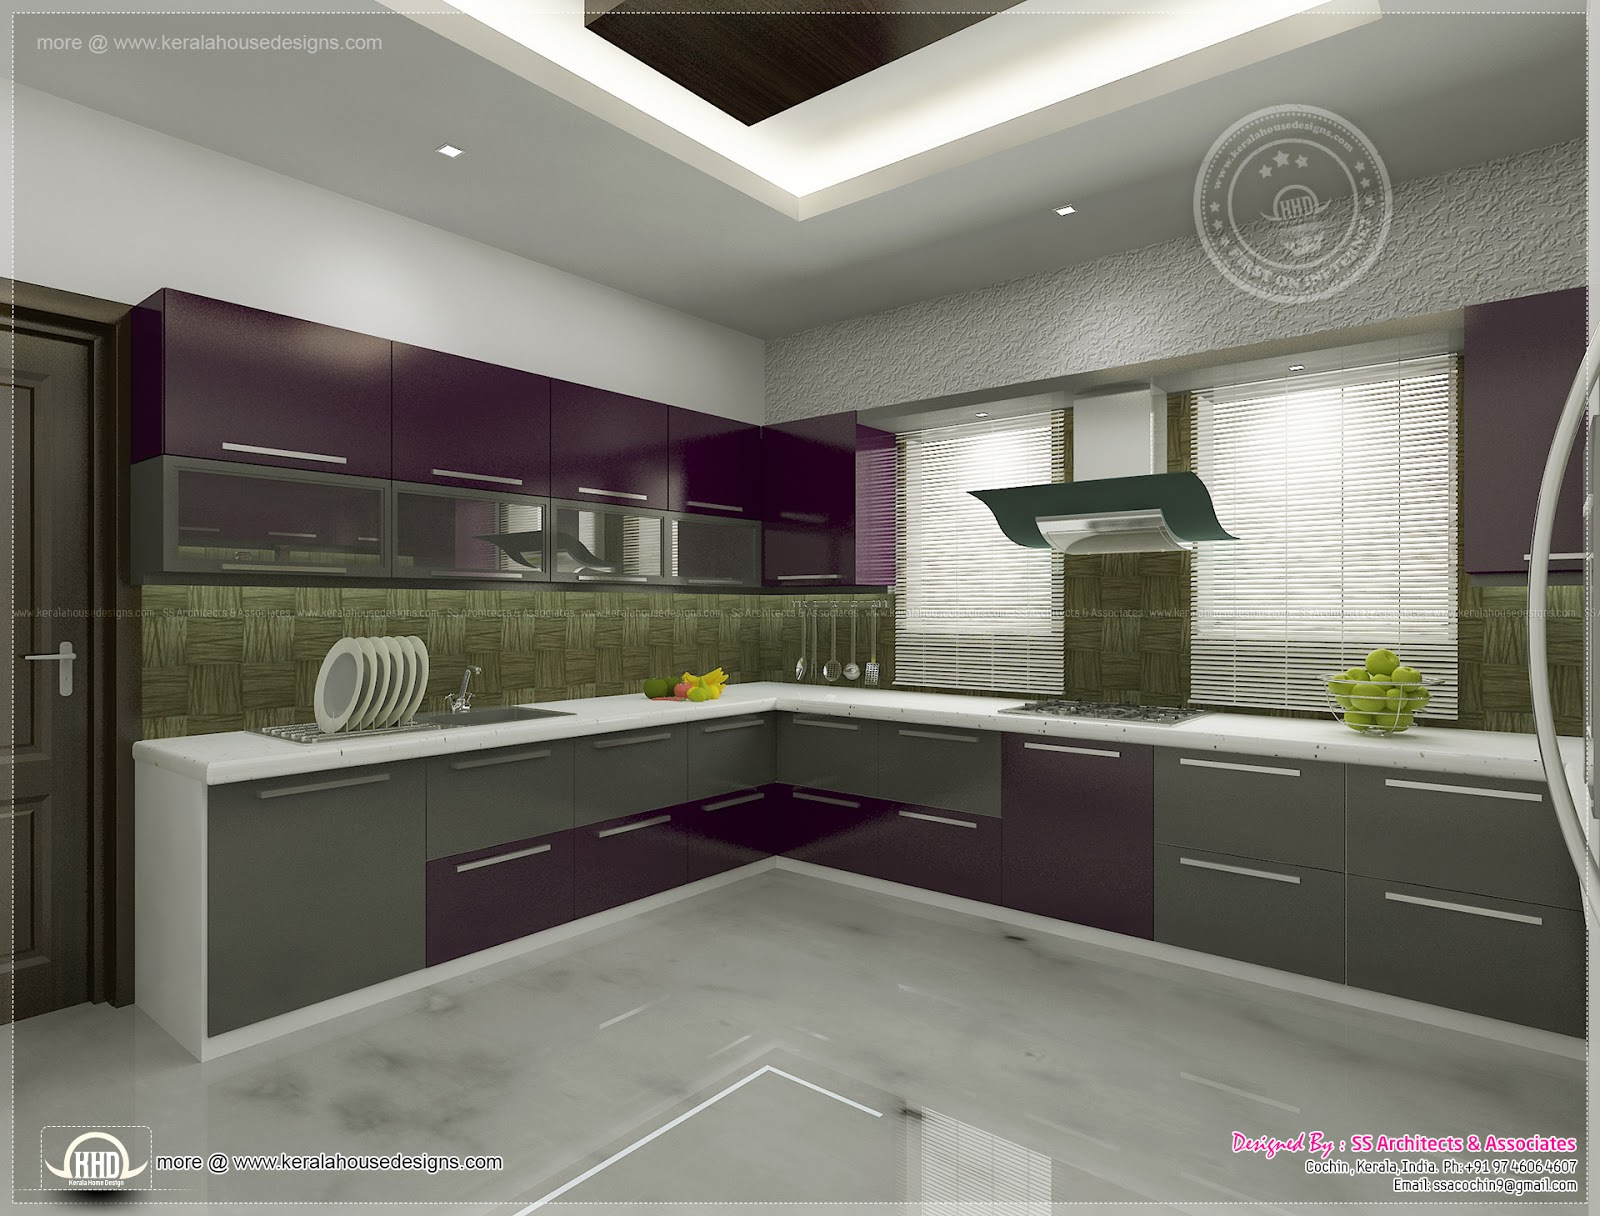 Kitchen interior views by ss architects cochin kerala for Indoor design ideas indian